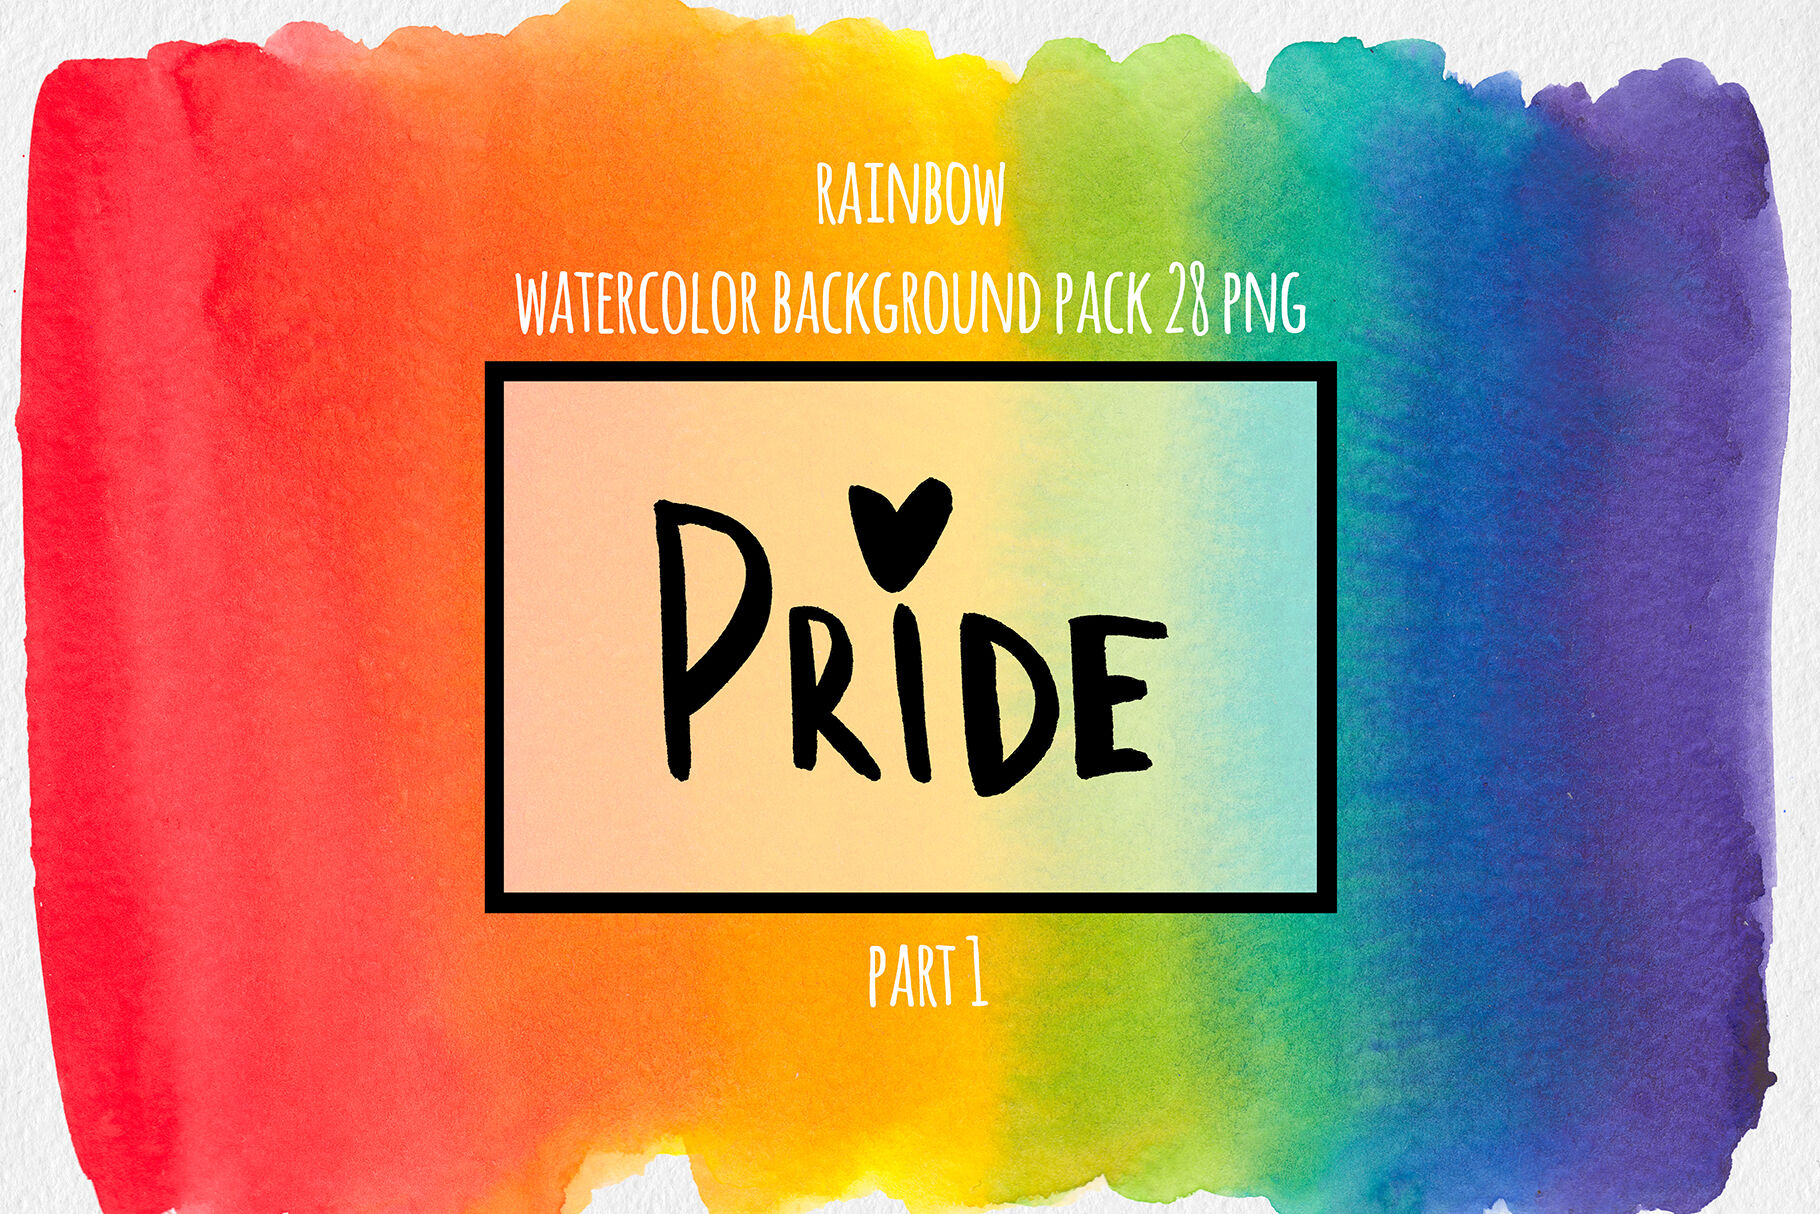 Watercolor Rainbow Background Lgbt Design By My Illustration Art